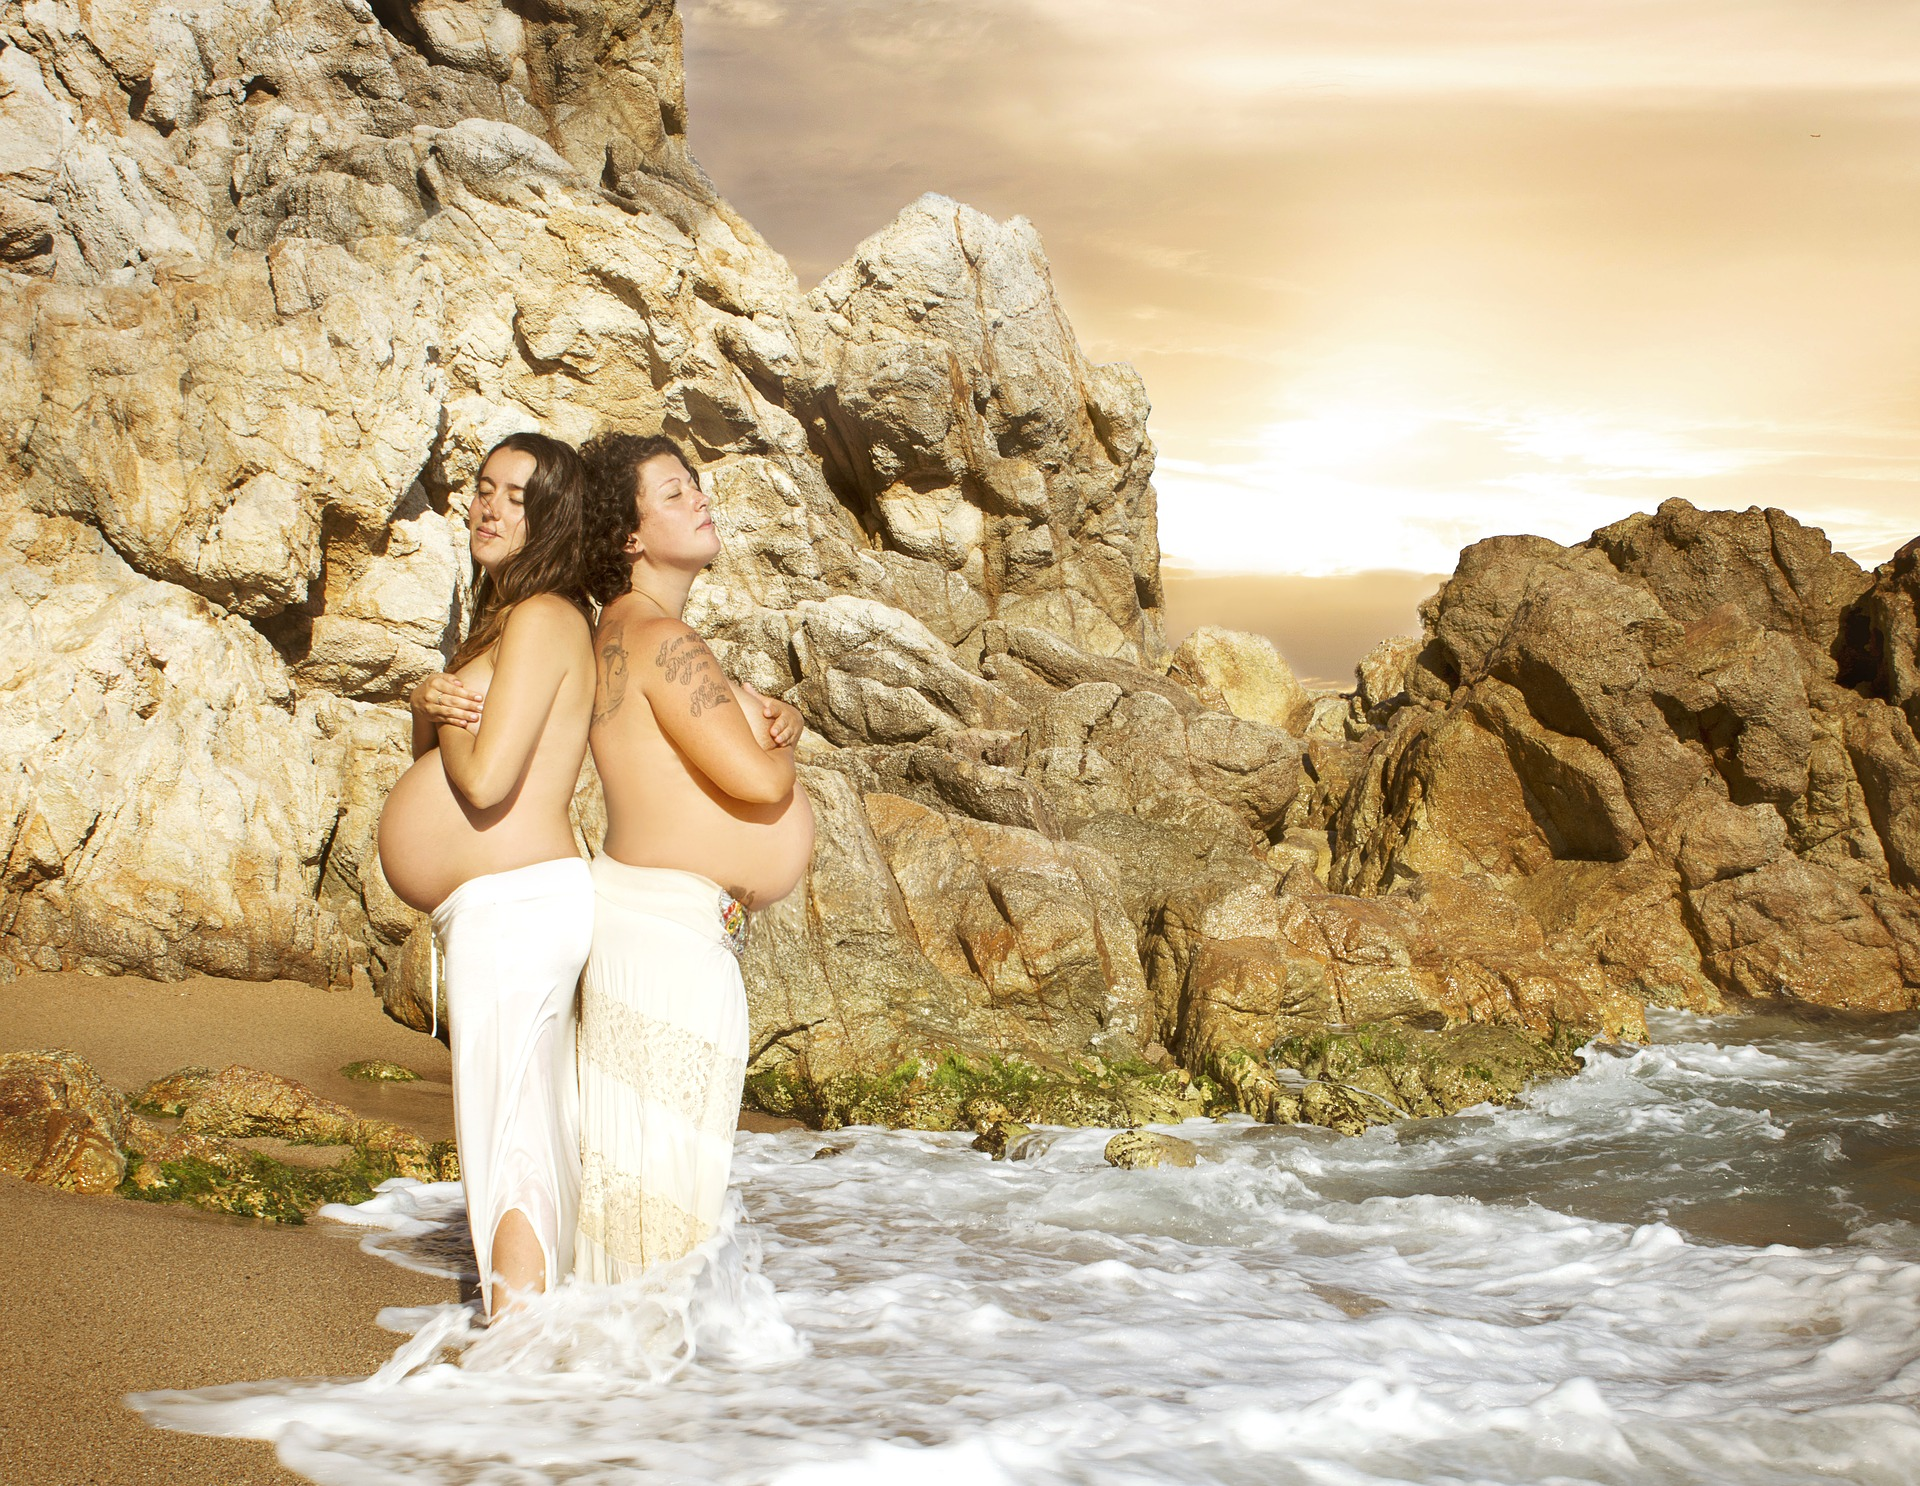 Two pregnant women wearing white pants and standing back to back in water with rocks in the background [Rising Tide Women's Whole Life Wellness]